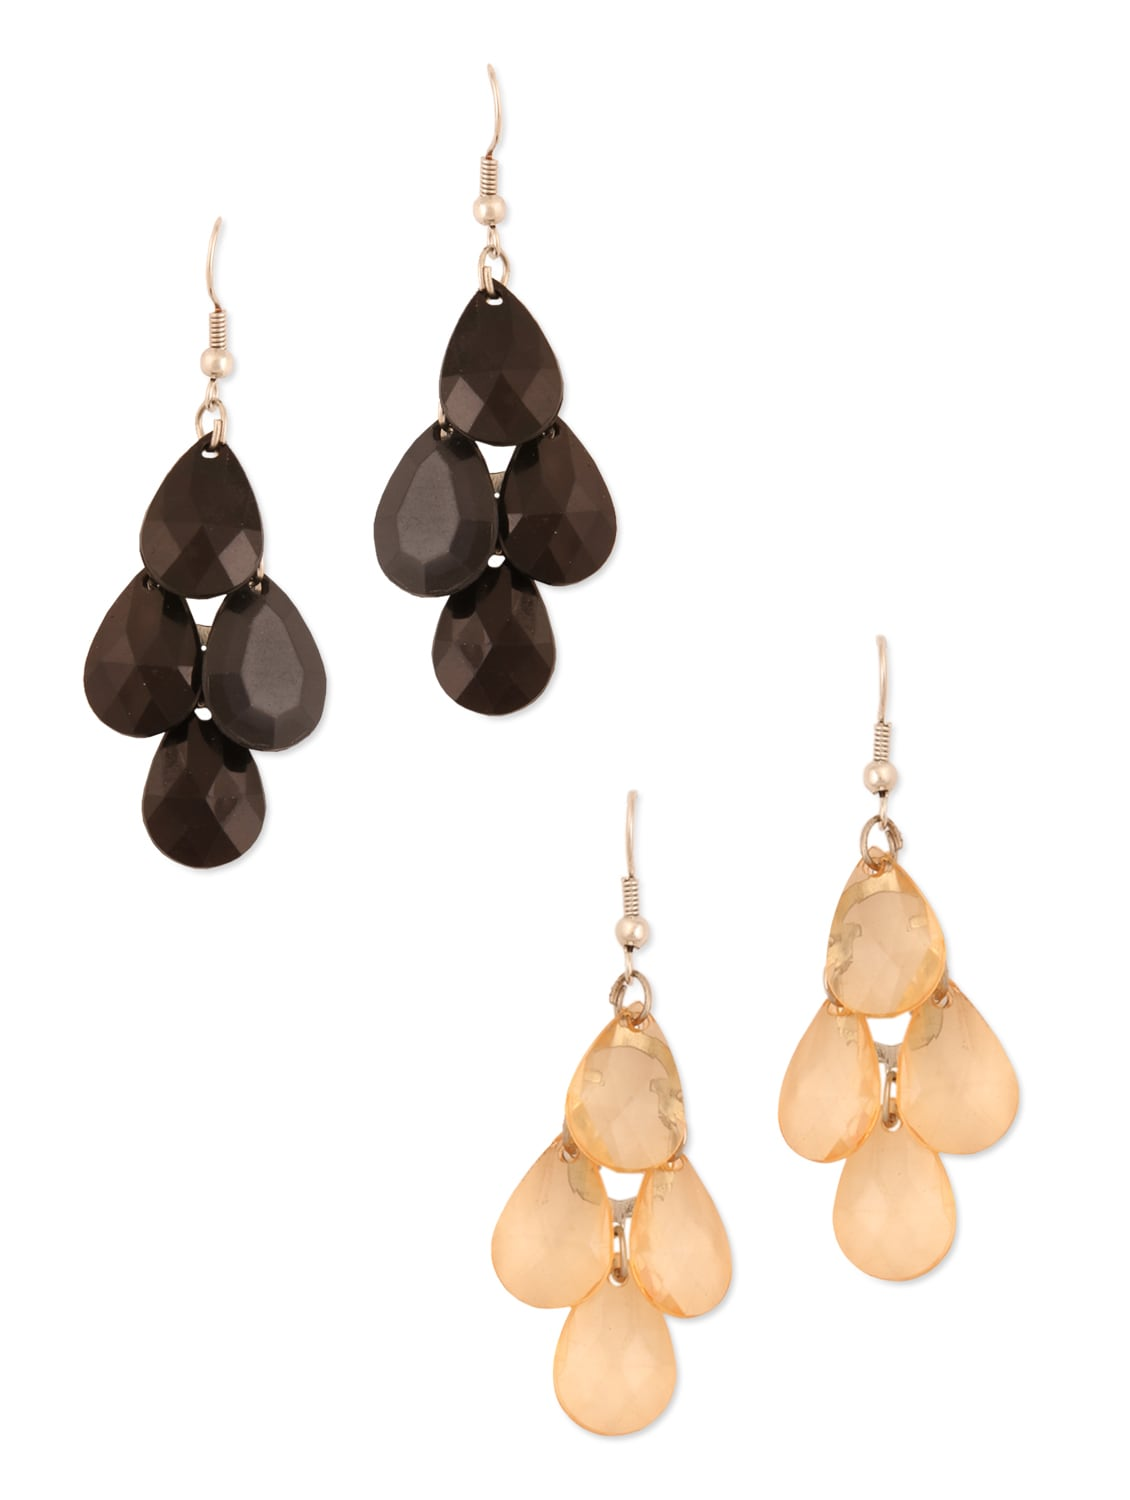 Peach Tear Drop Cluster Earrings - Blend Fashion Accessories